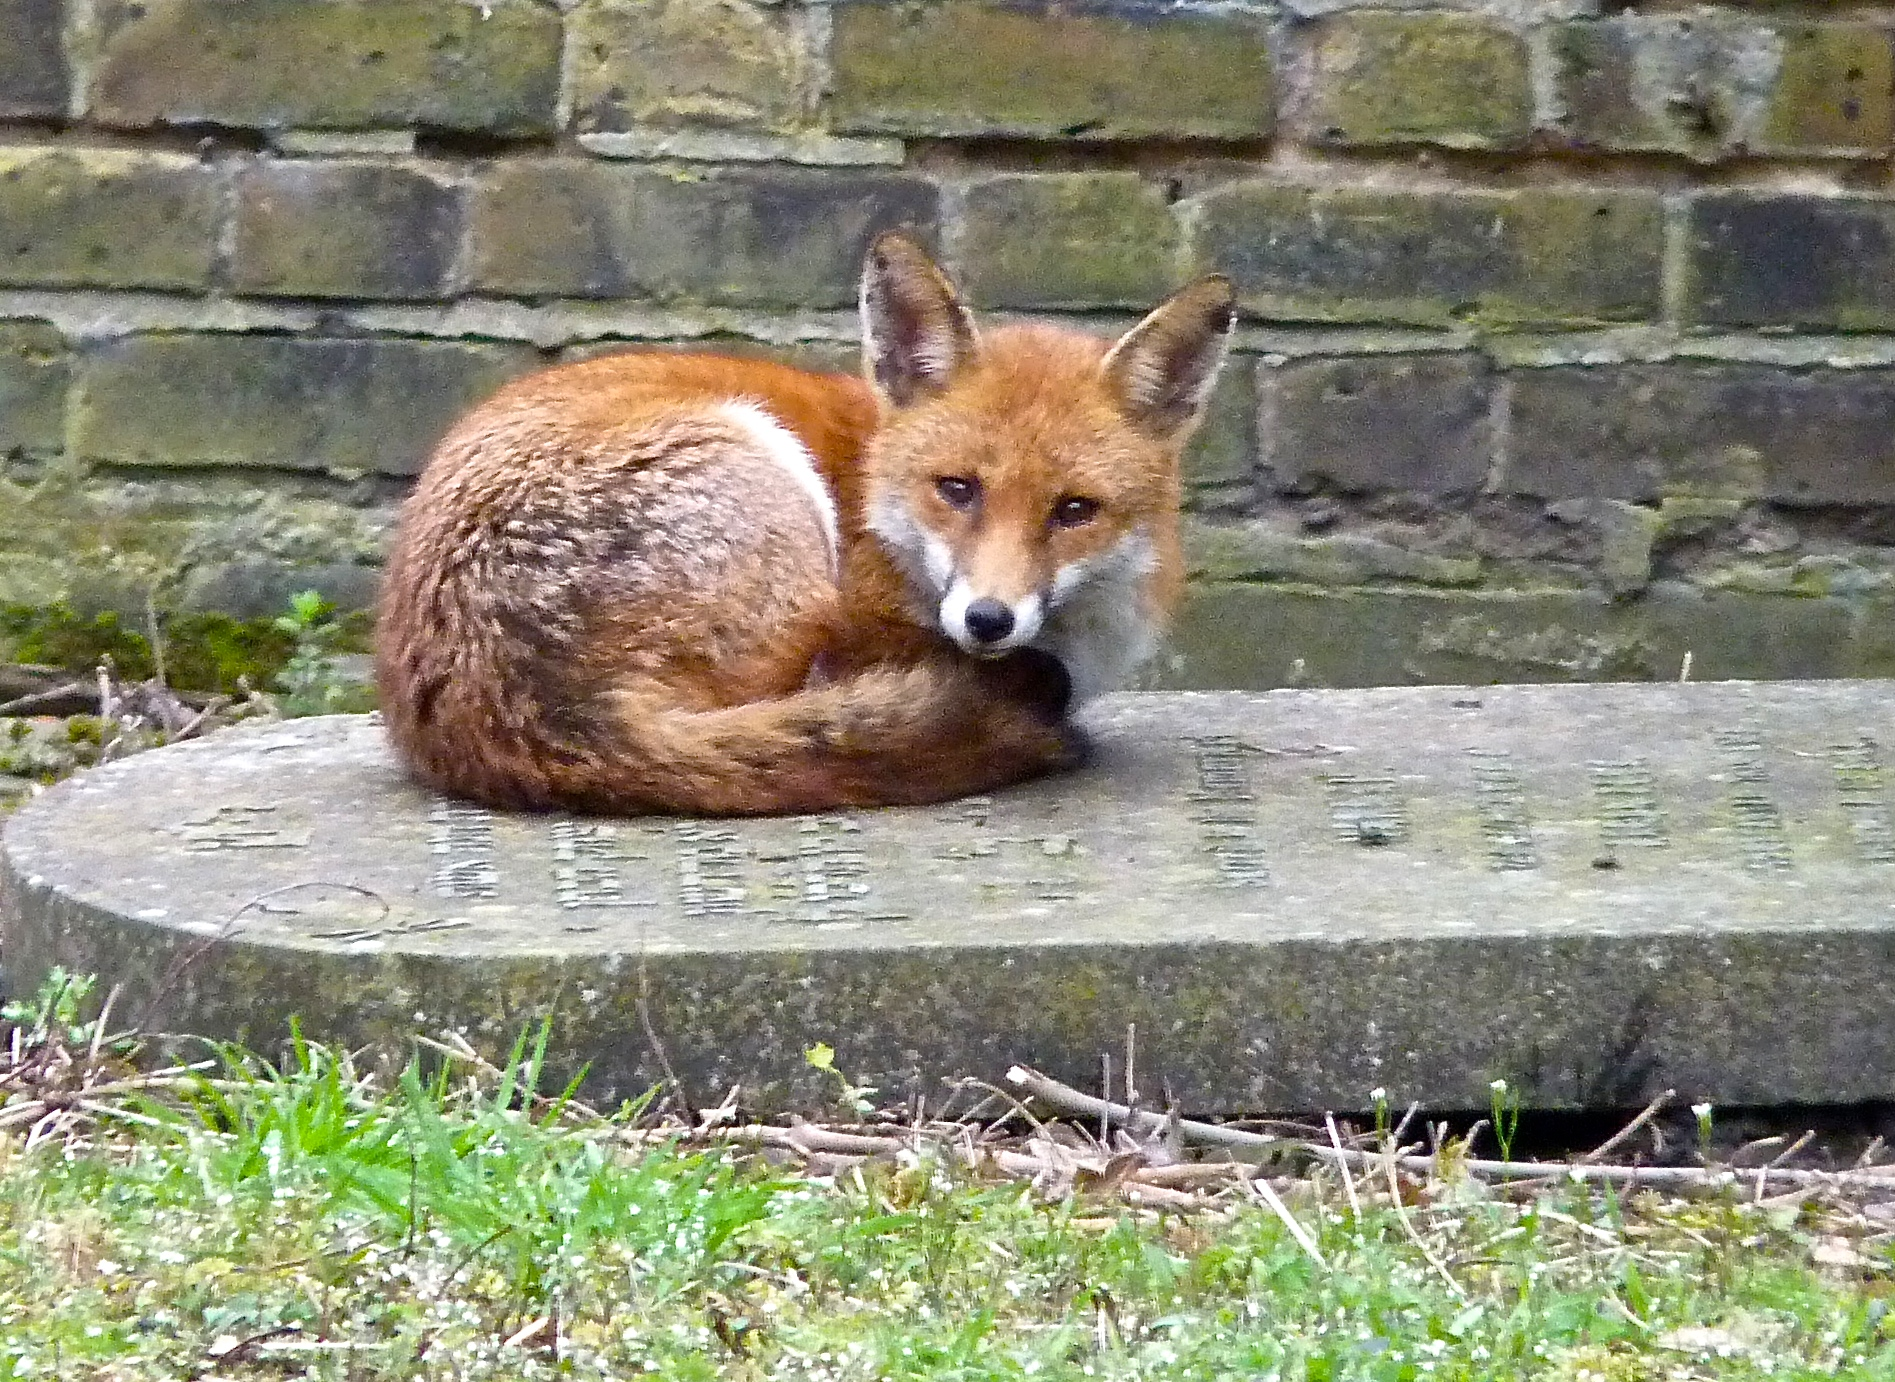 This is Foxykins. Foxykins is a red-tailed fox who lives next door. She is pretty and smells good but likes to eat birds. Olive Daddy loves birds. My job is to protect the birds from Foxykins.Stay away from our garden, Foxykins!